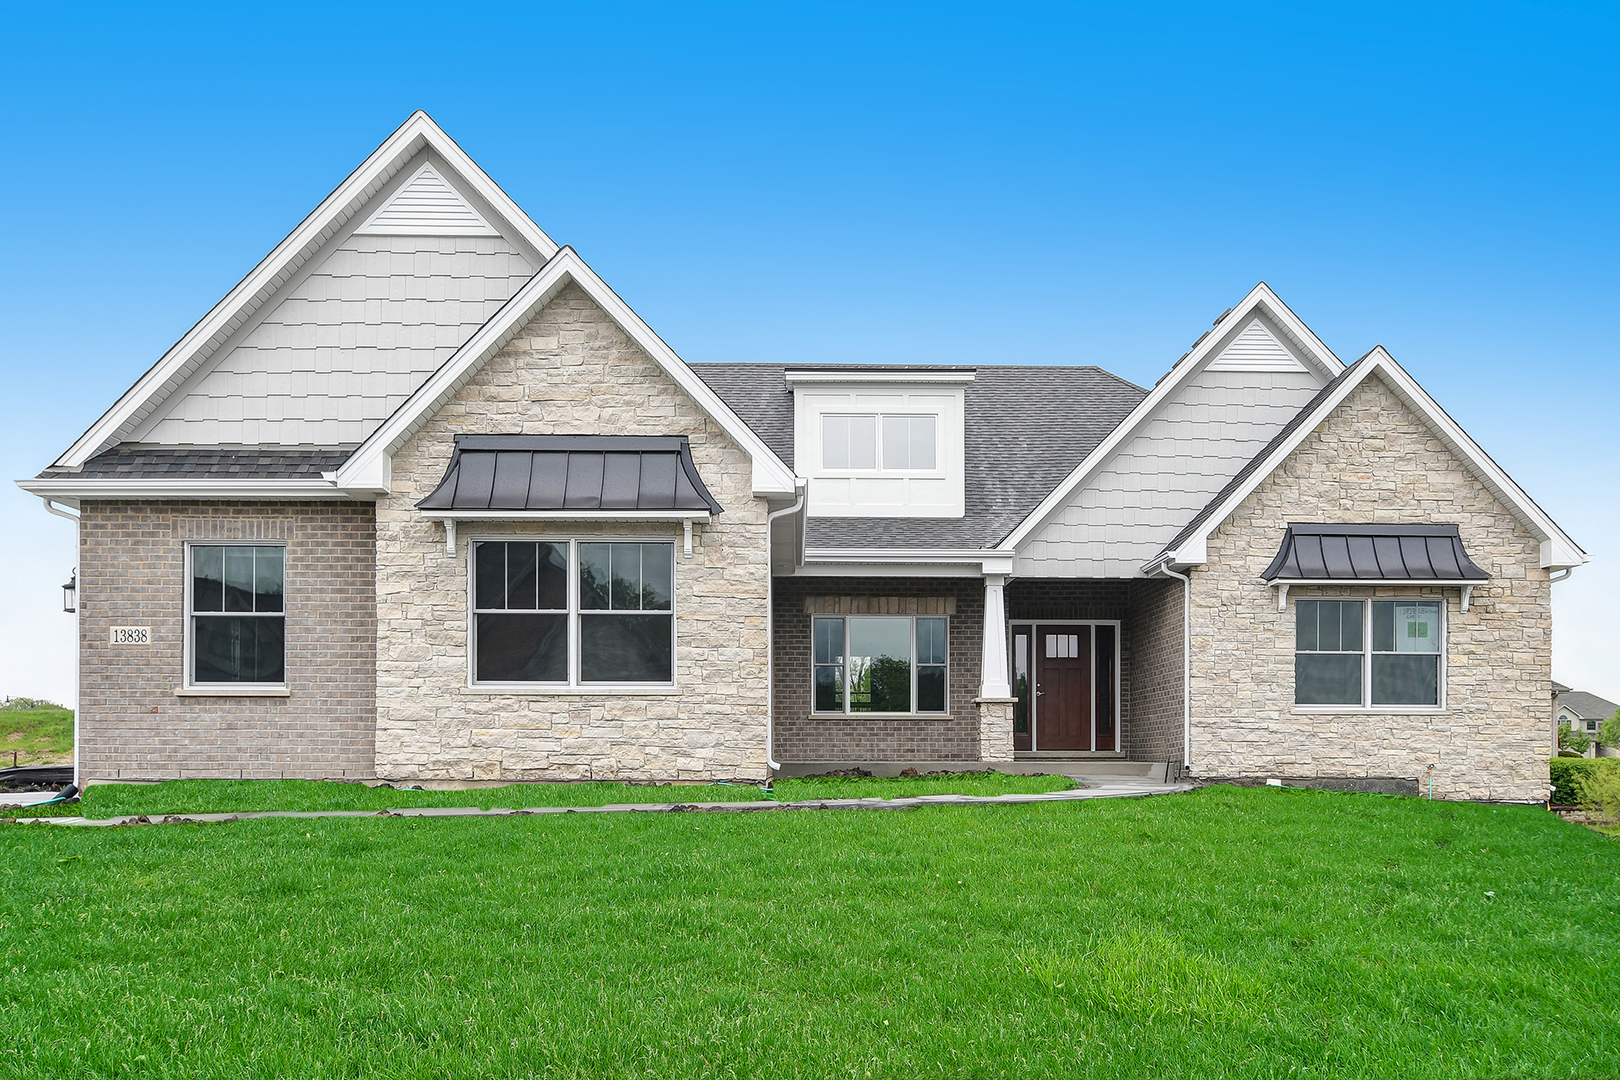 13838 West Stonebridge Woods Crossing Drive, Homer Glen, Illinois